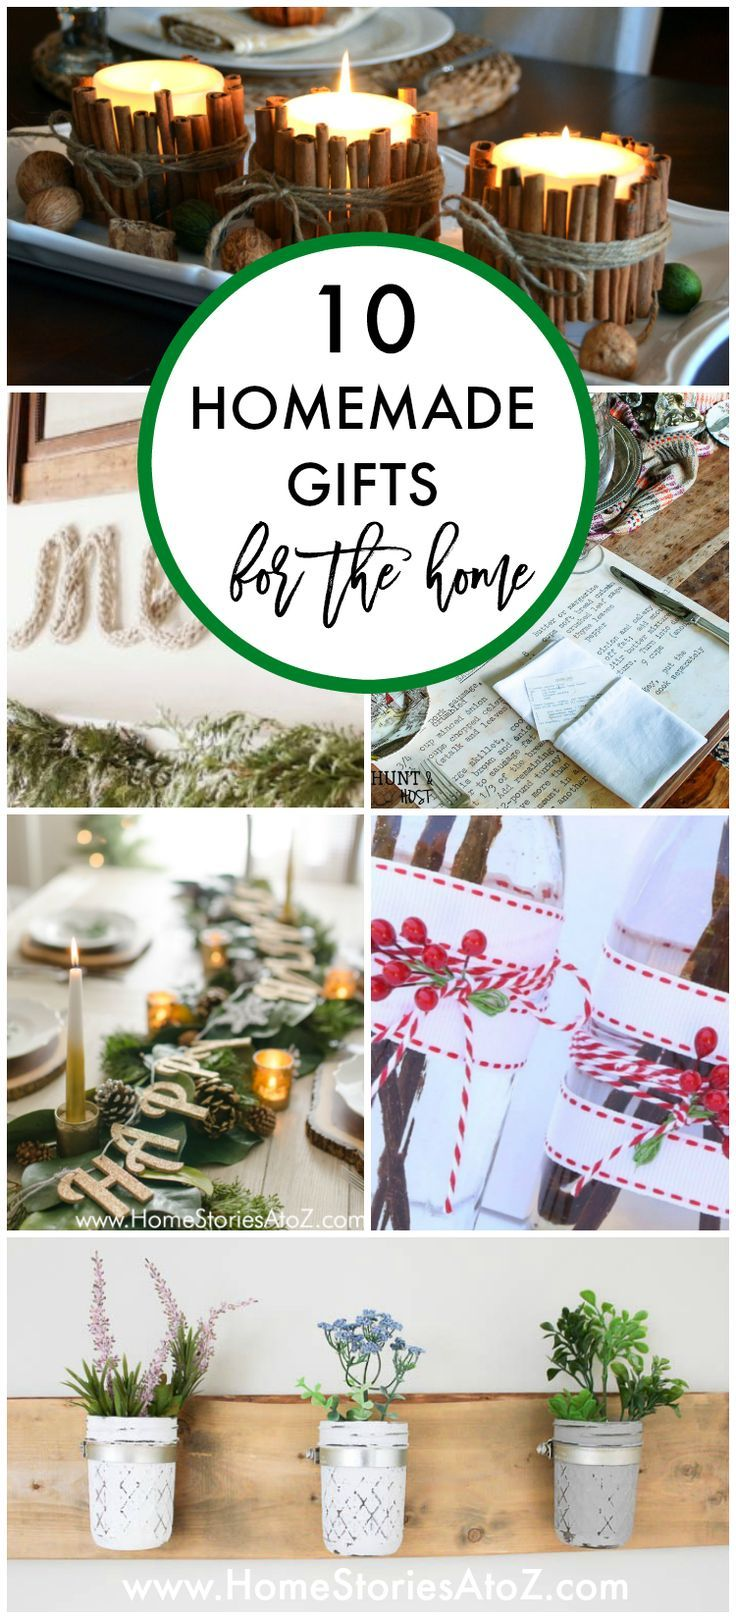 Christmas Homemade Gifts 90 Homemade Gift Ideas Gifts Pinterest Homemade Gifts